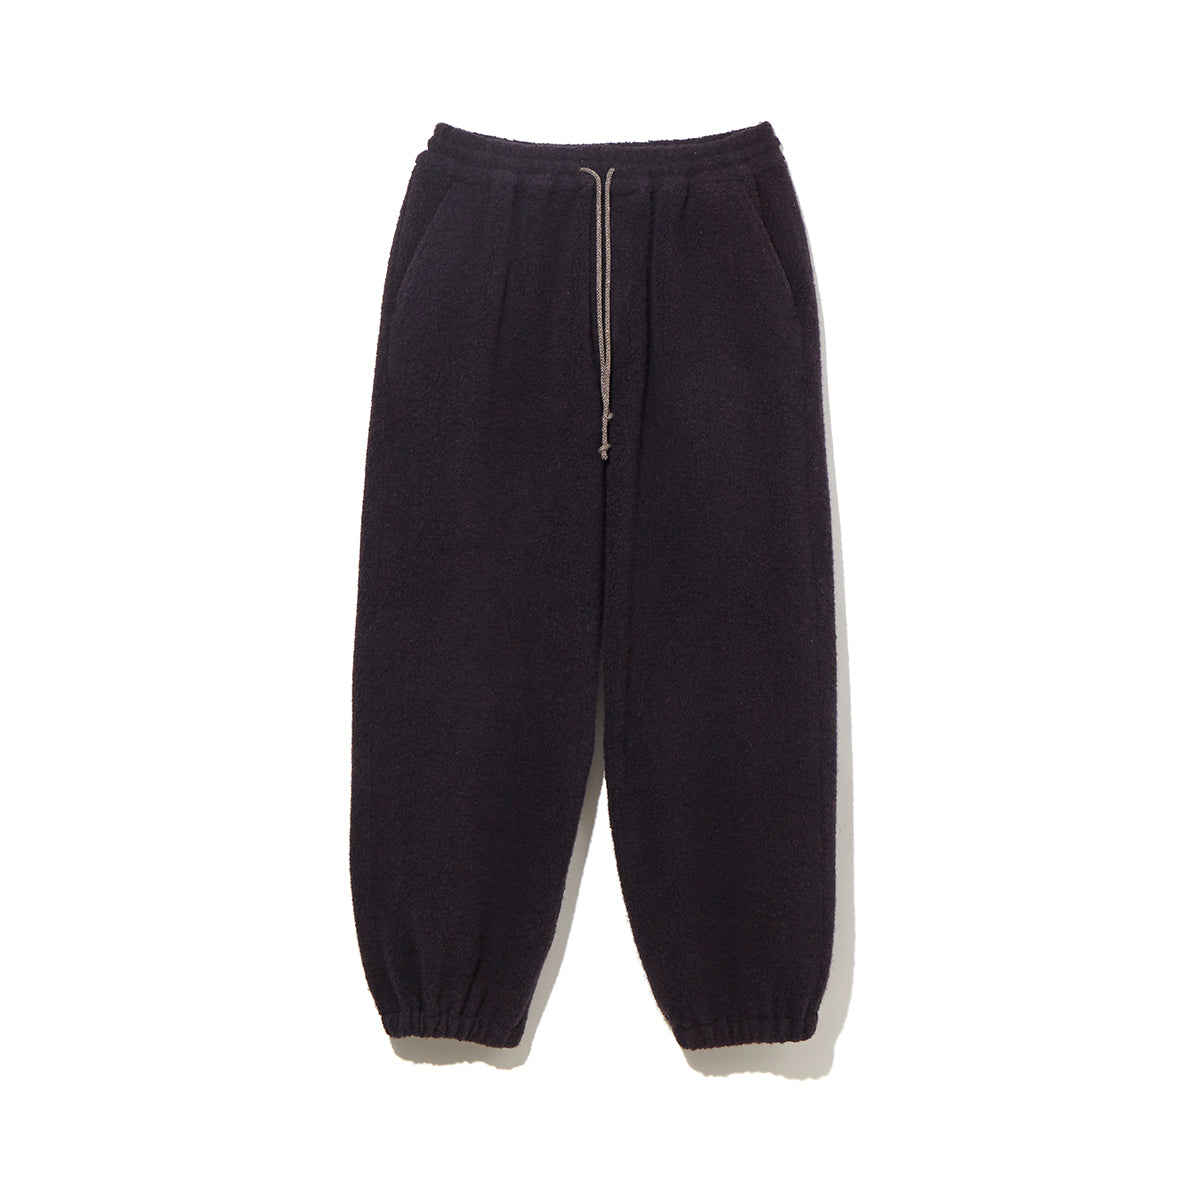 WOOL PILE PANTS / BLACK (21A-NSA-CS-02)